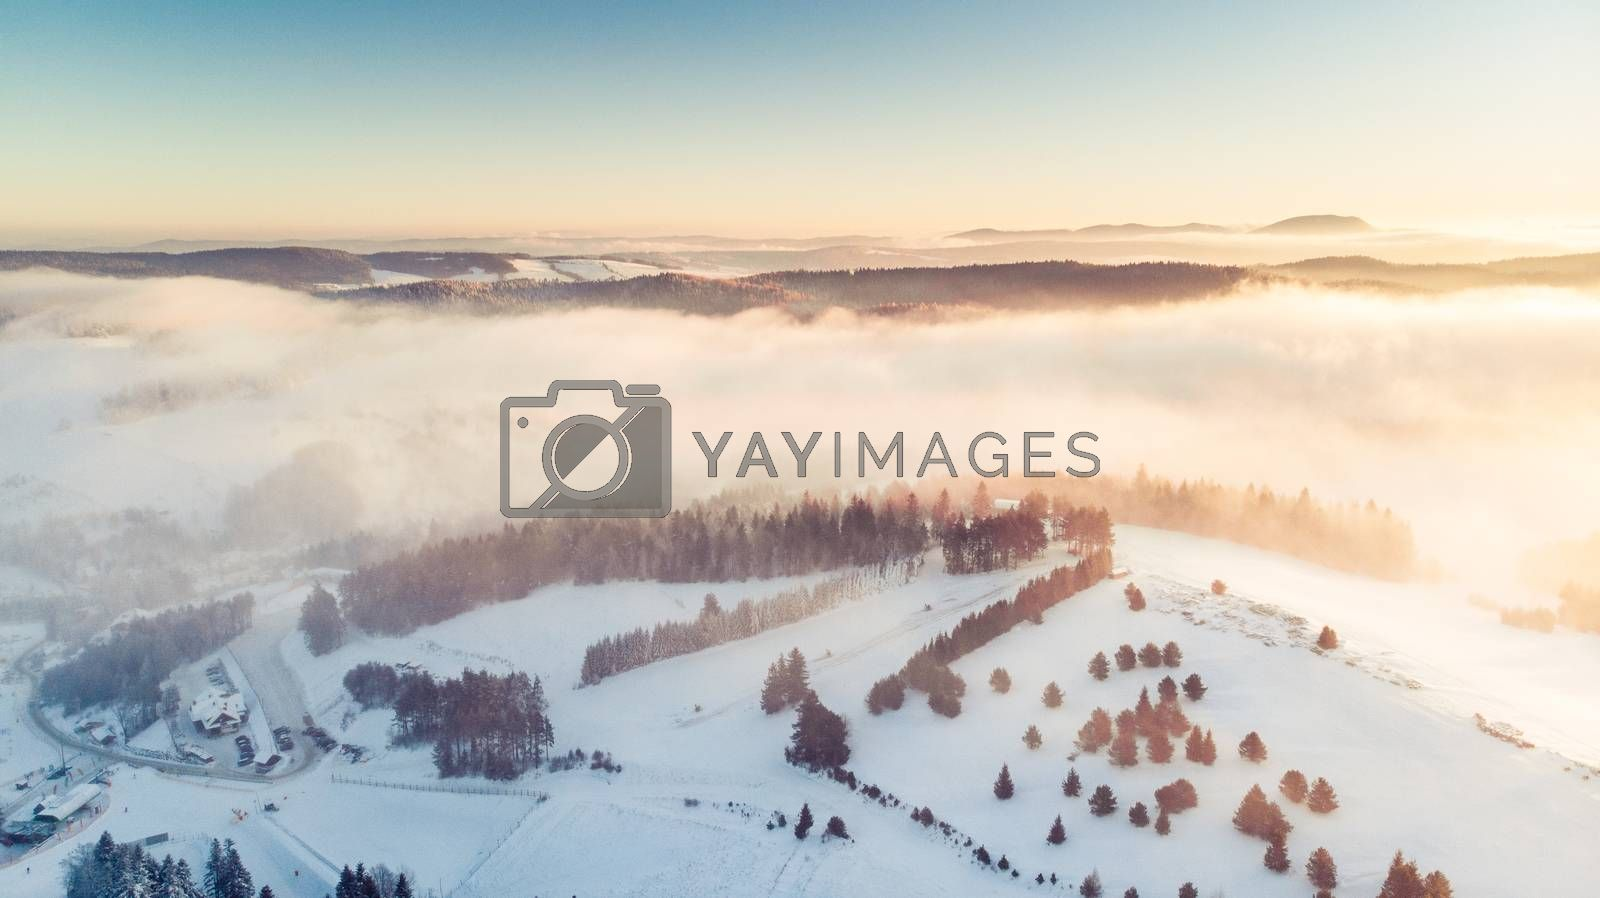 Aerial Panoramic View Over Valley in Winter Season. Slotwiny nea by merc67